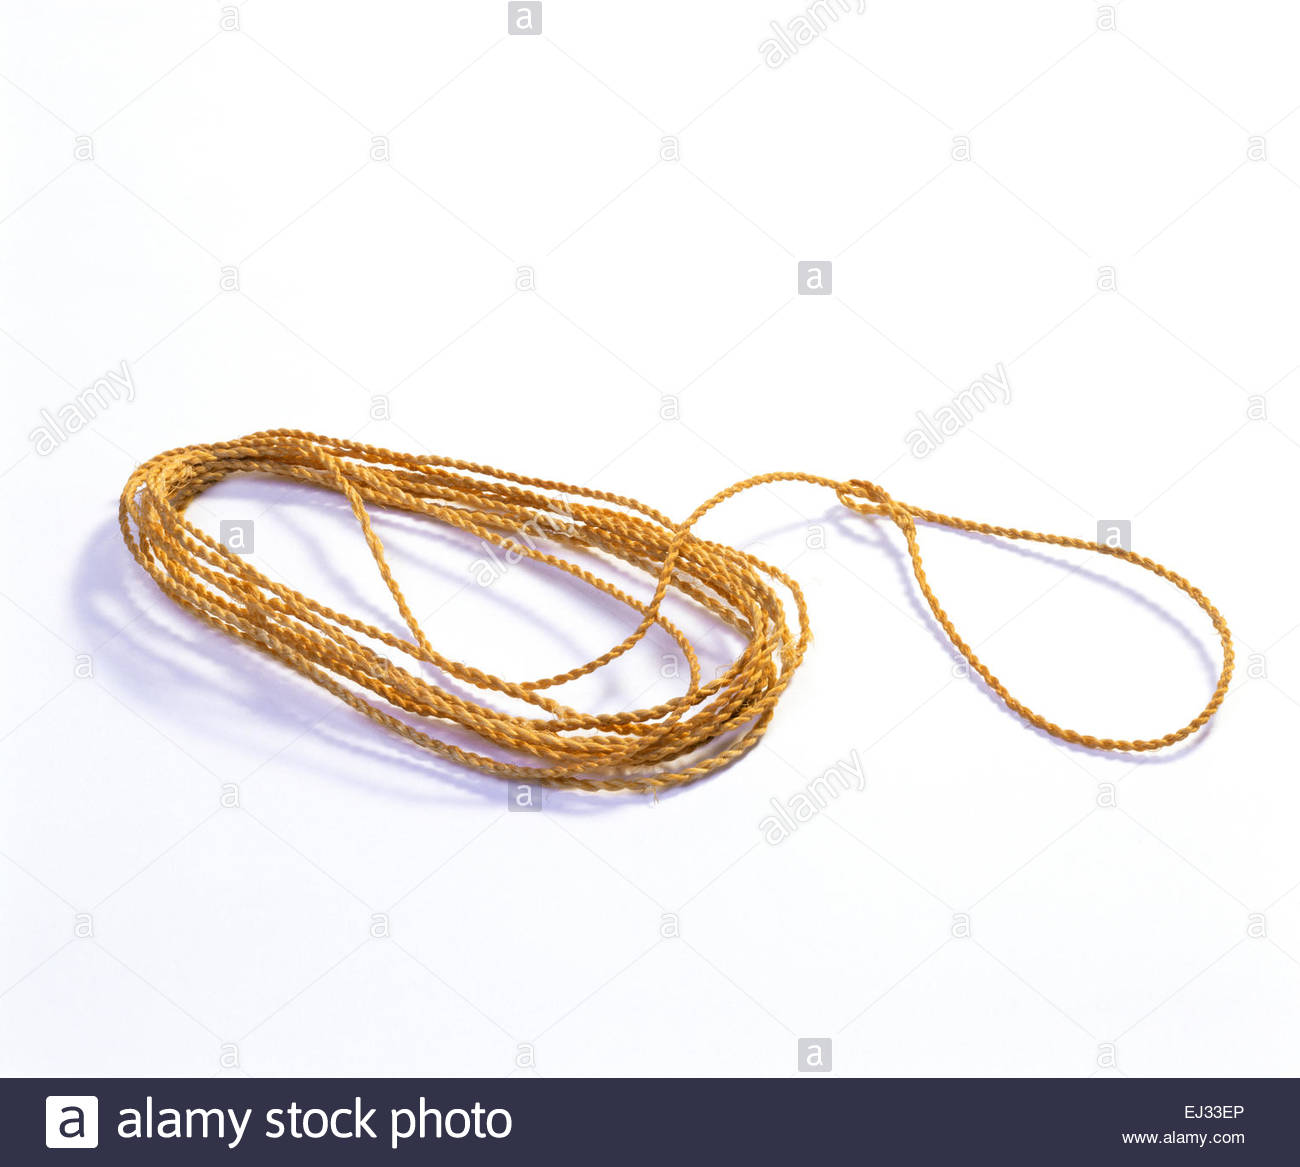 Anasazi yucca fiber small animal snare.  Mesa Verde National Park, Colorado. - Stock Image